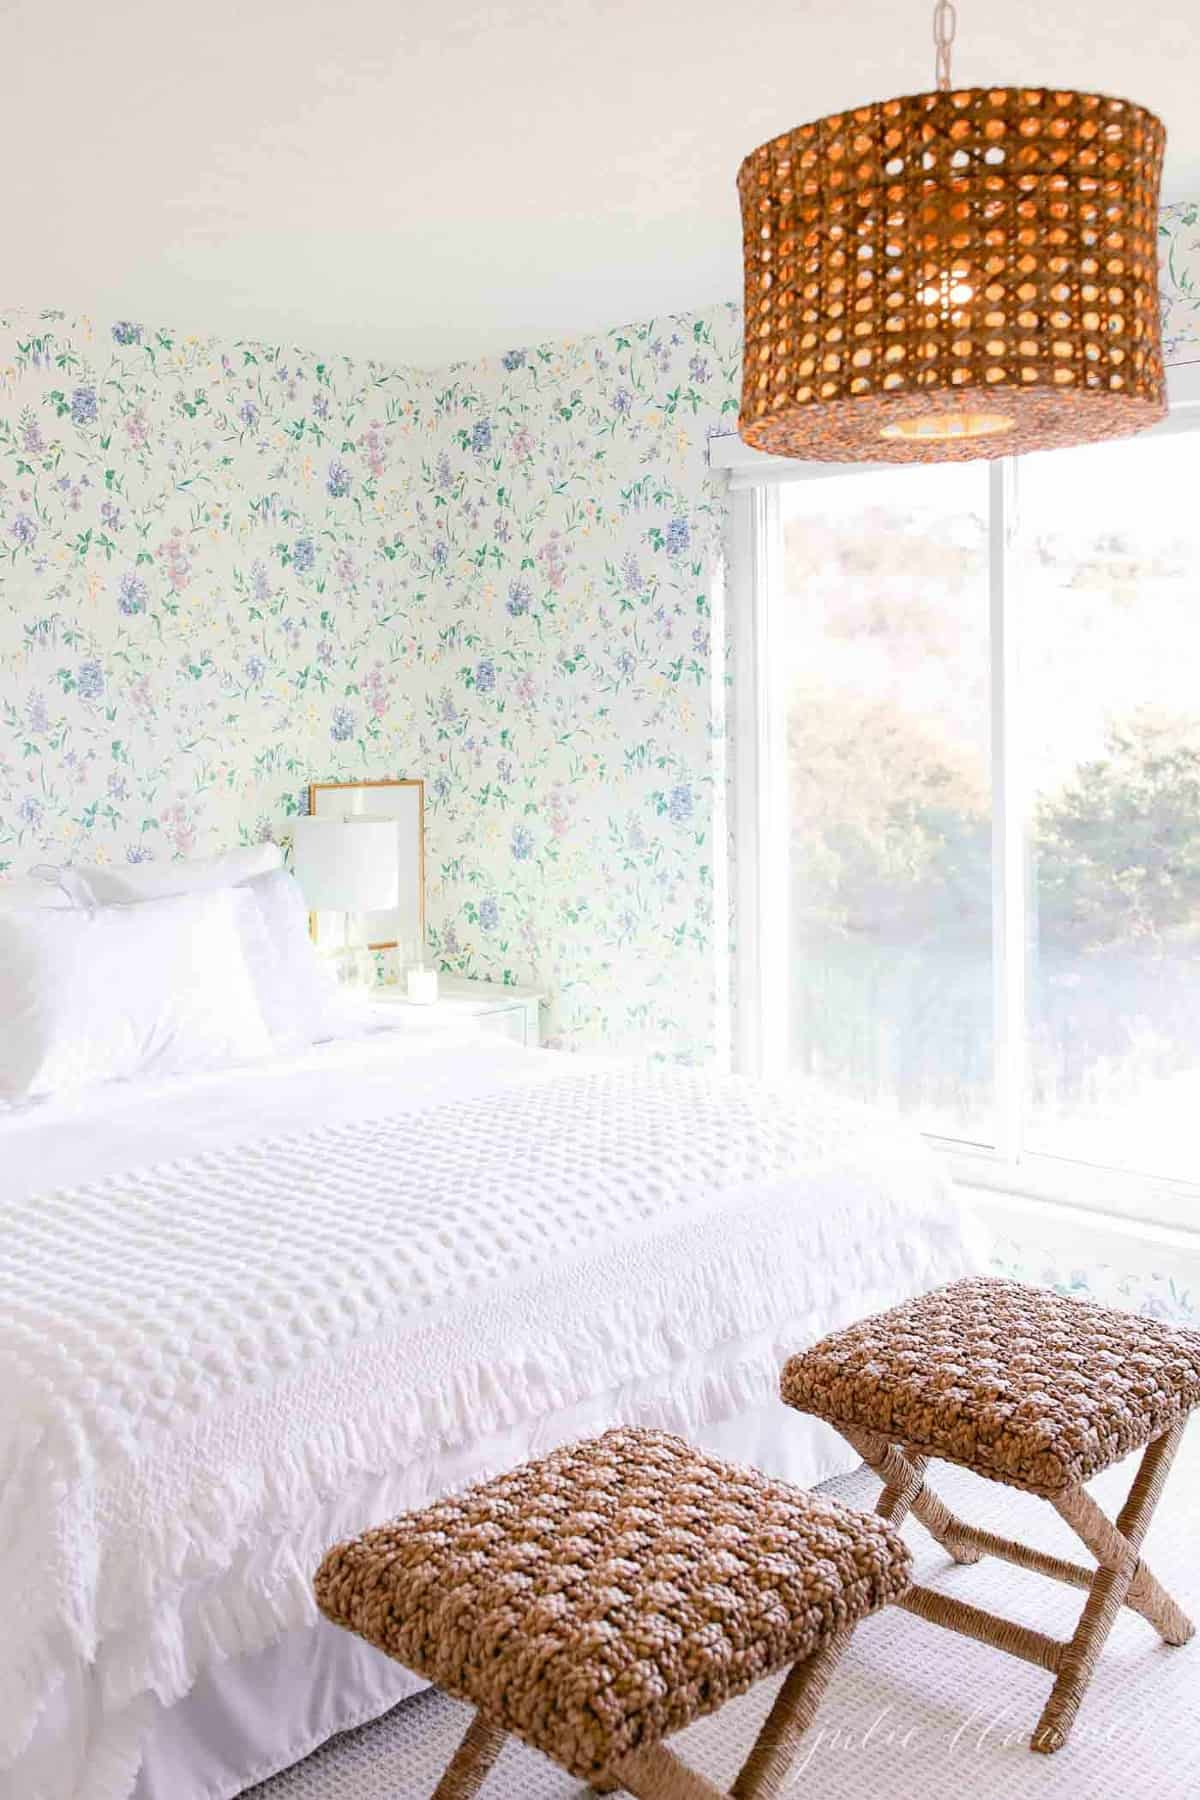 A cottage bedroom with white bedding, floral wallpaper, and a big window with a room darkening shade.